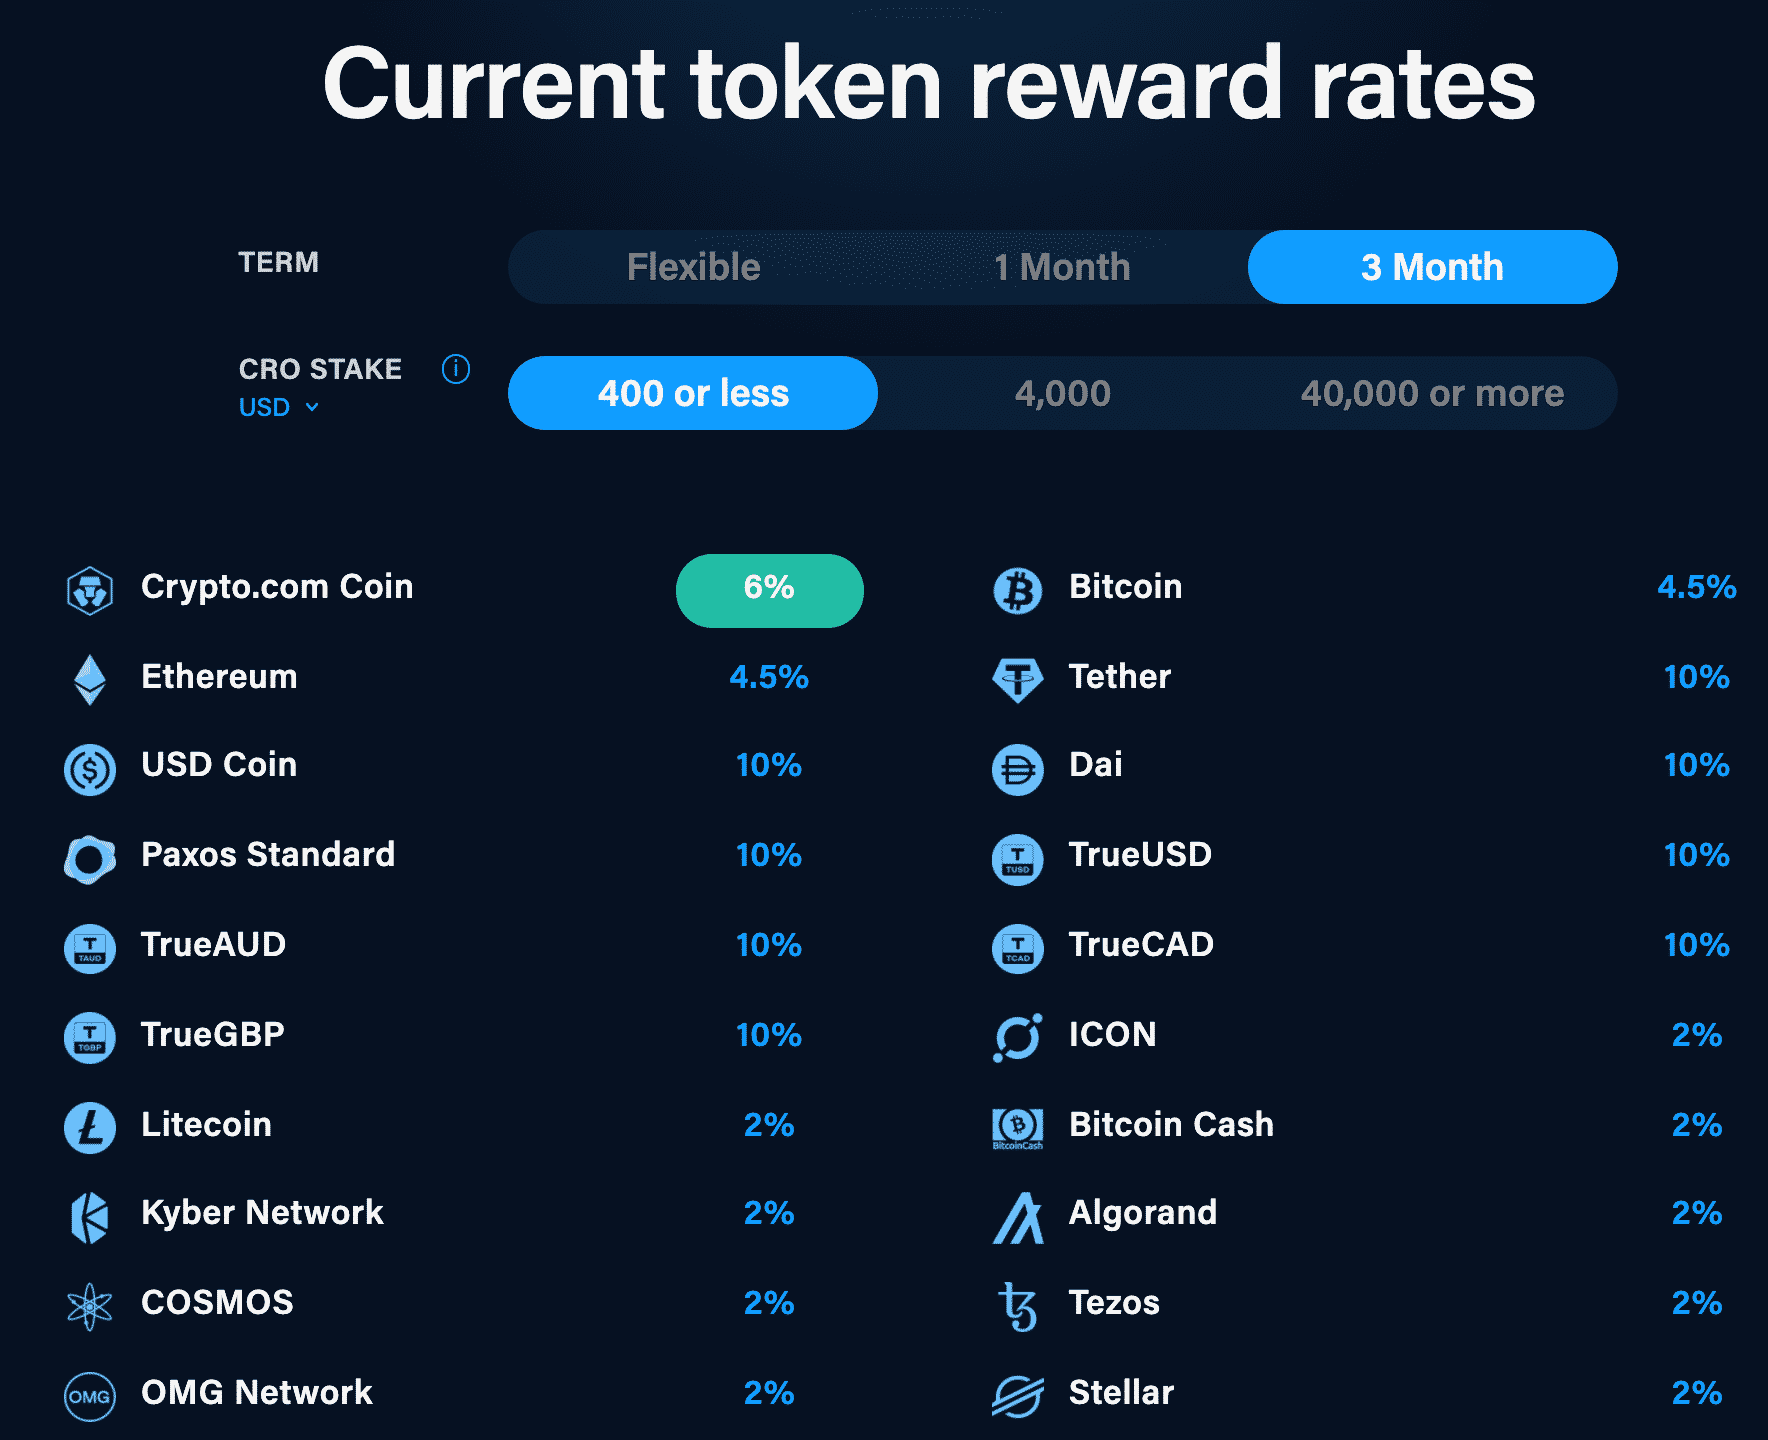 Crypto Earn with a 3 month lockup